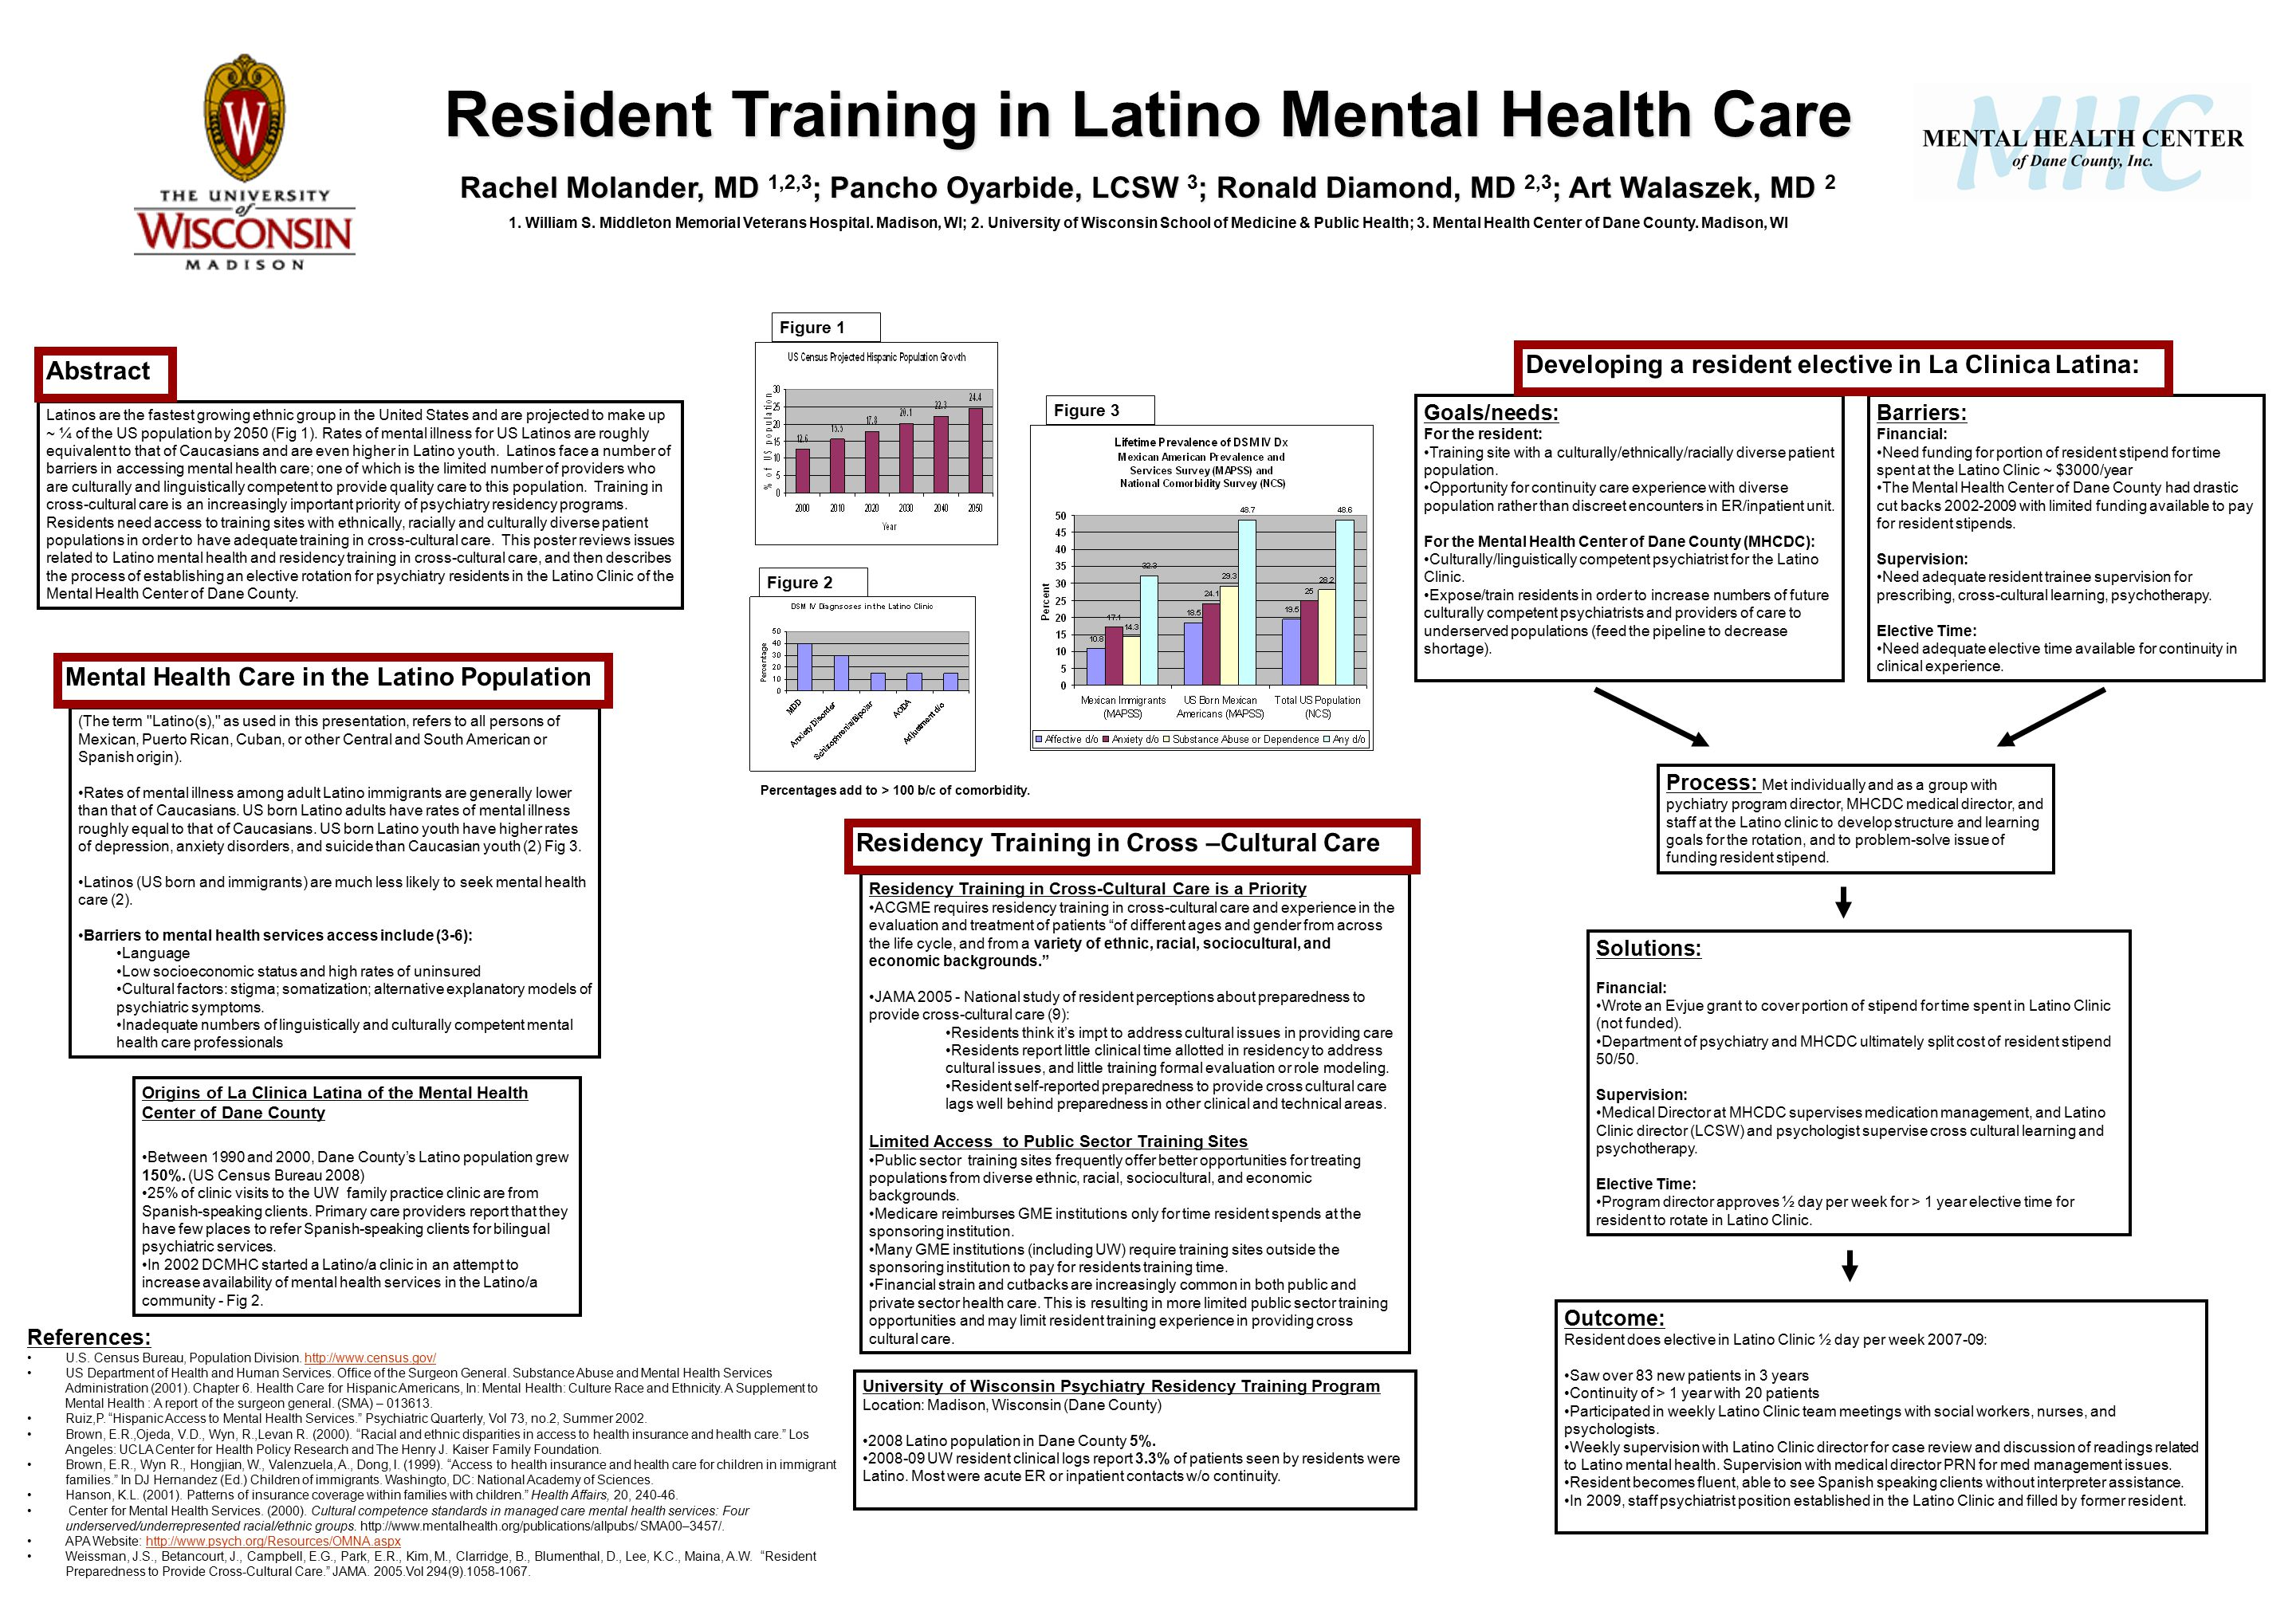 printed by www.postersession.com Resident Training in Latino Mental Health Care Rachel Molander, MD ; Pancho Oyarbide, LCSW ; Ronald Diamond, MD ; Art Walaszek, MD Rachel Molander, MD 1,2,3 ; Pancho Oyarbide, LCSW 3 ; Ronald Diamond, MD 2,3 ; Art Walaszek, MD 2 1.